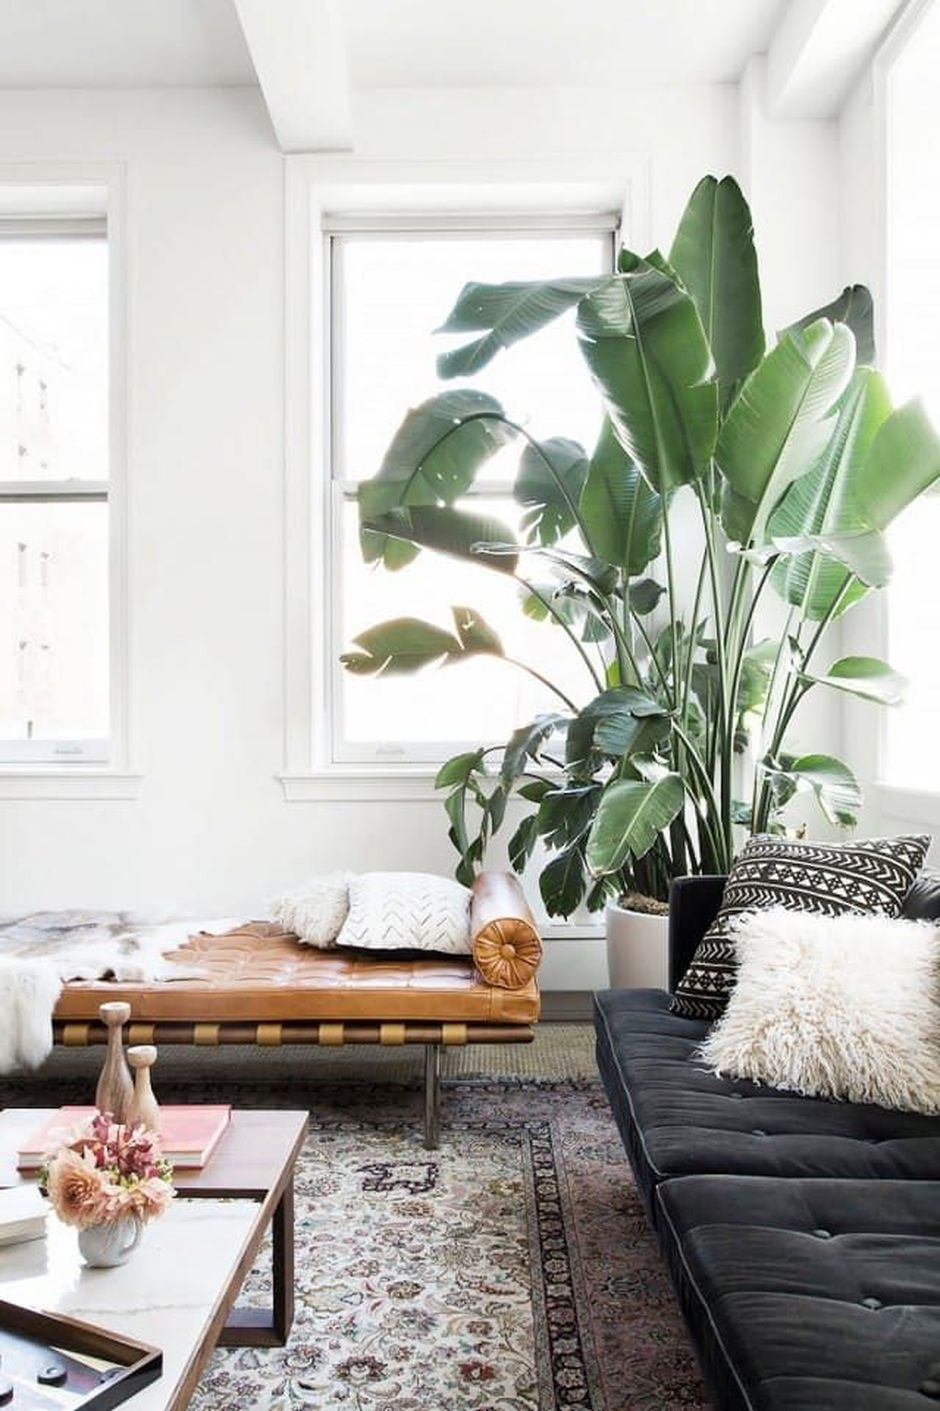 Amazing Indoor Jungle Decorations Tips and Ideas 52 - Hoommy.com